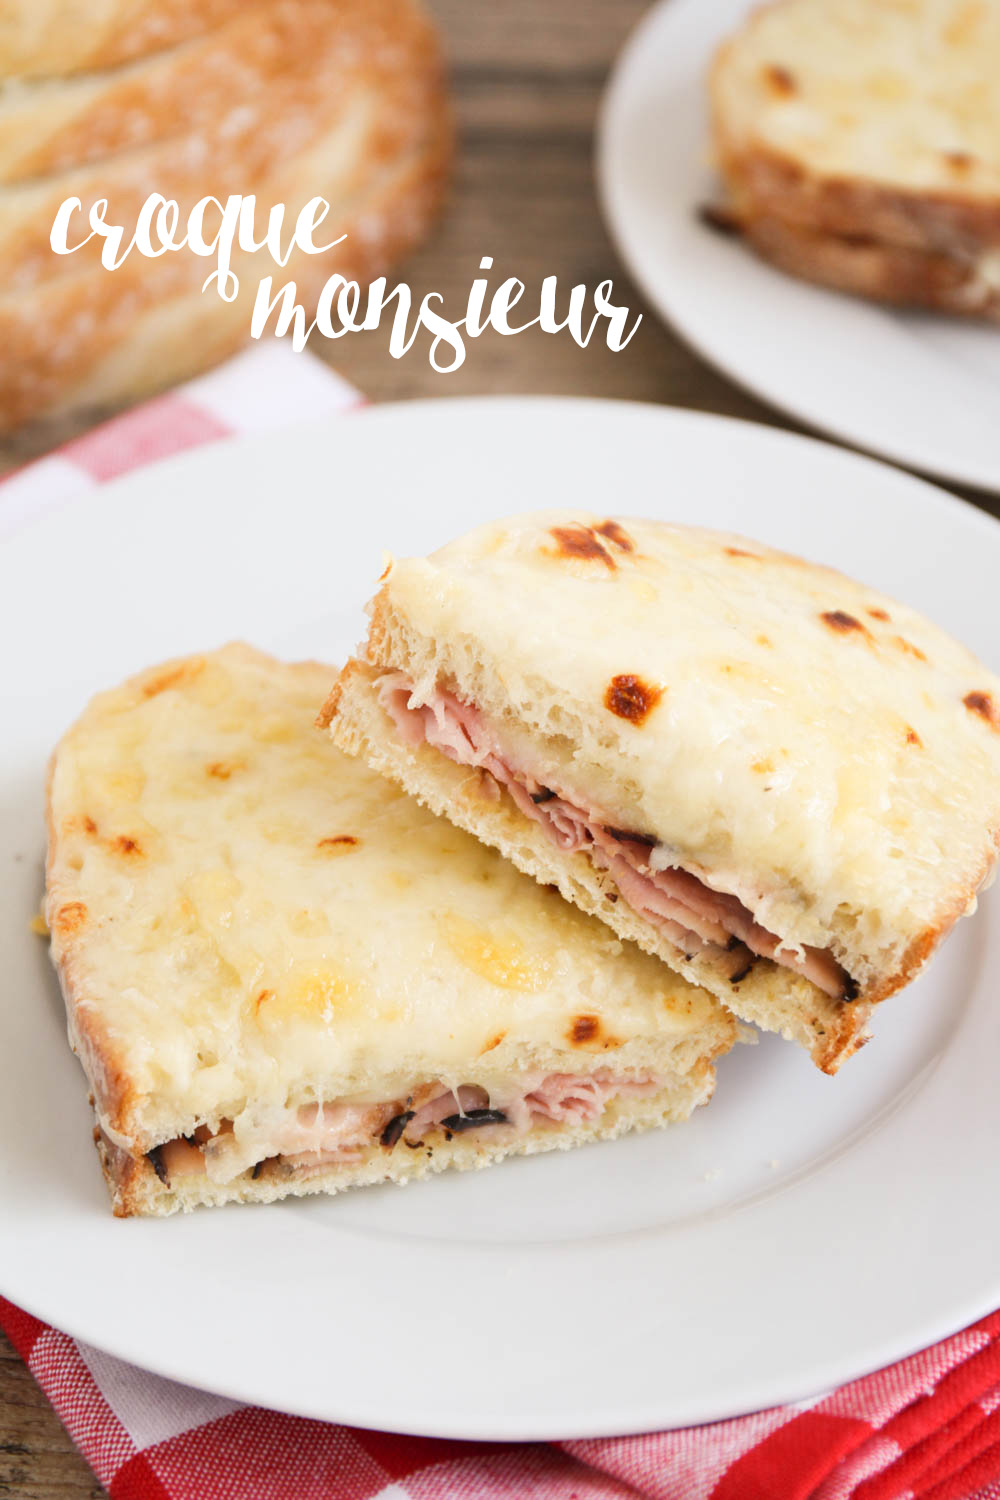 These croque monsieur sandwiches are delicious and surprisingly easy to make. A perfect hearty lunch or dinner!